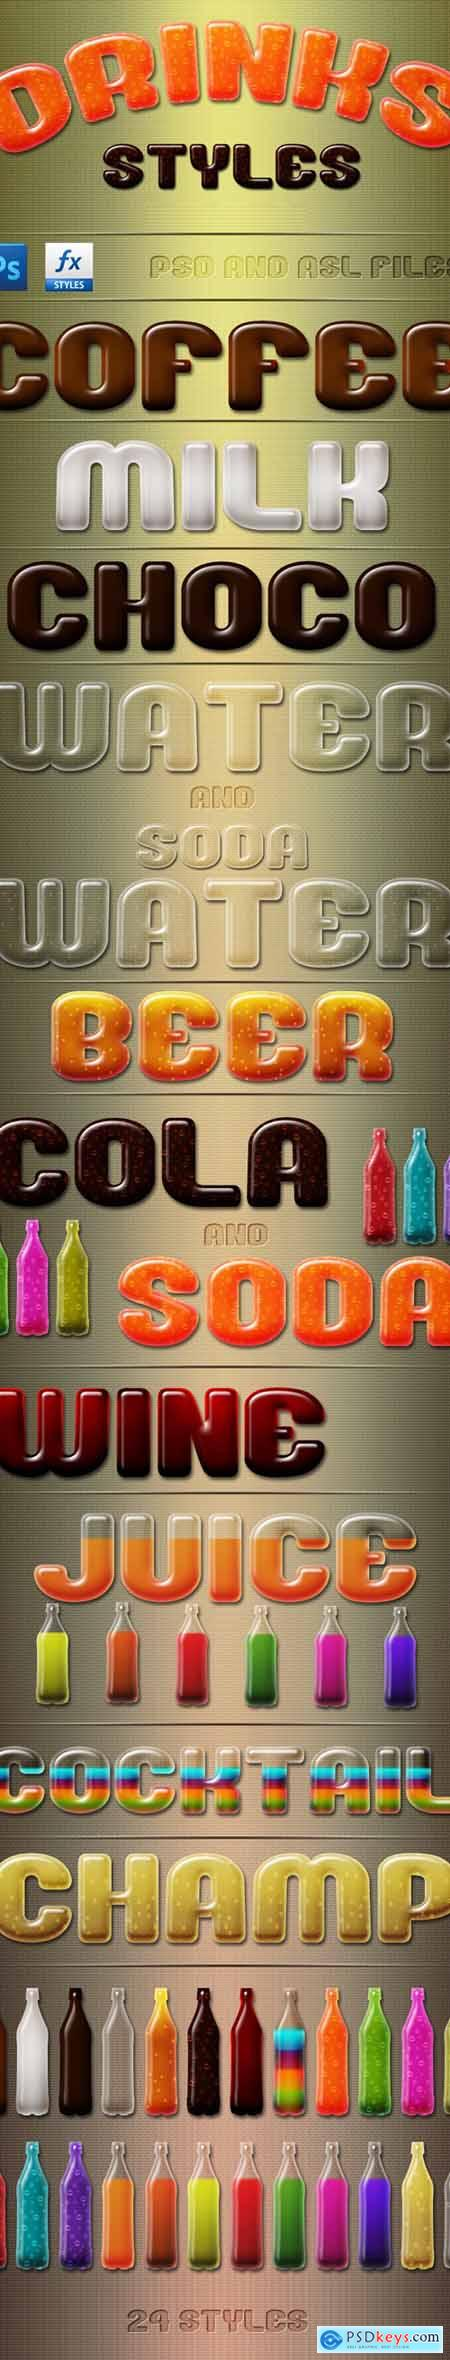 Drinks Styles Text Effects 24392259